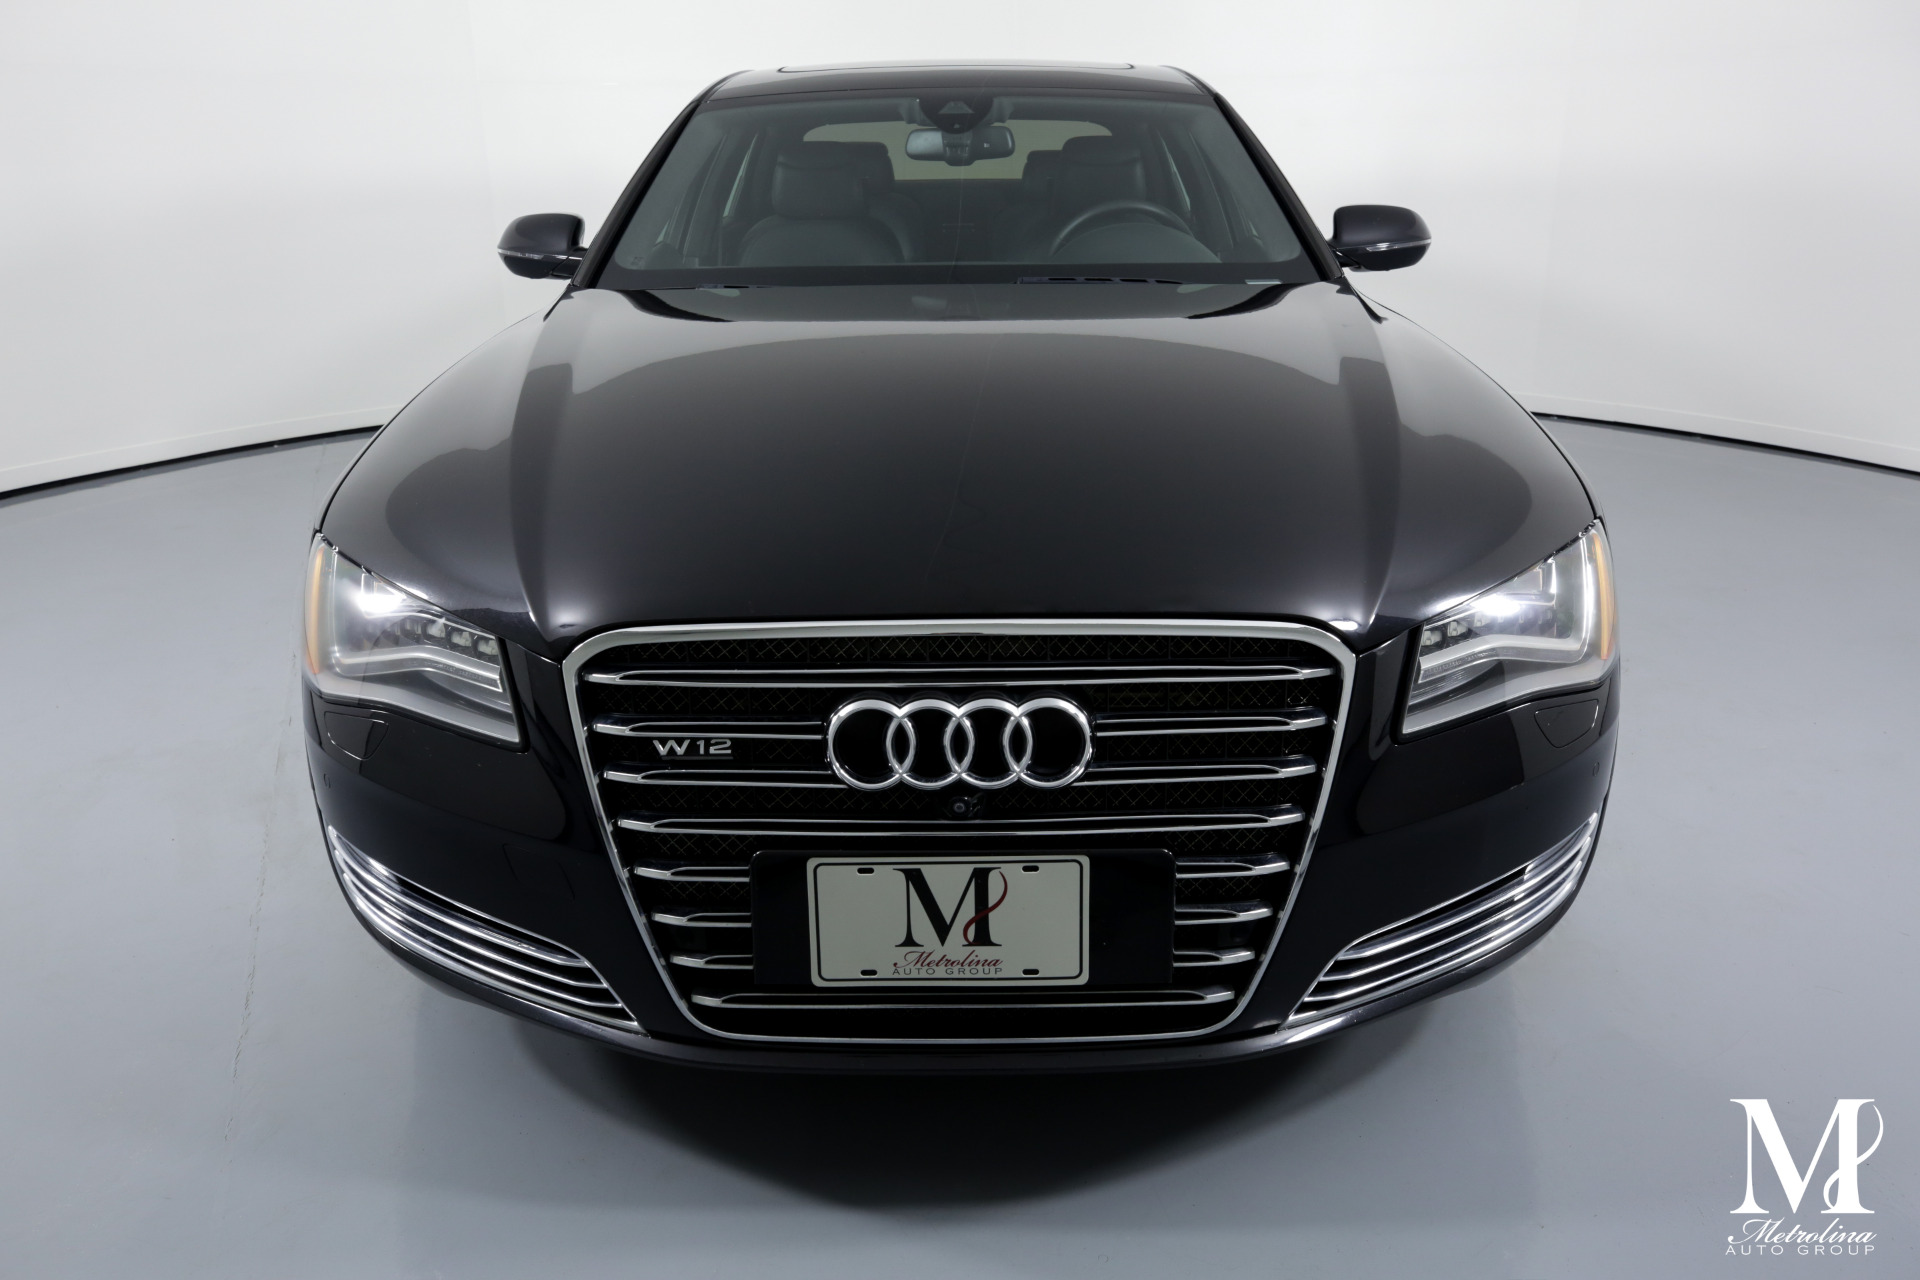 Used 2013 Audi A8 L W12 quattro for sale Sold at Metrolina Auto Group in Charlotte NC 28217 - 3